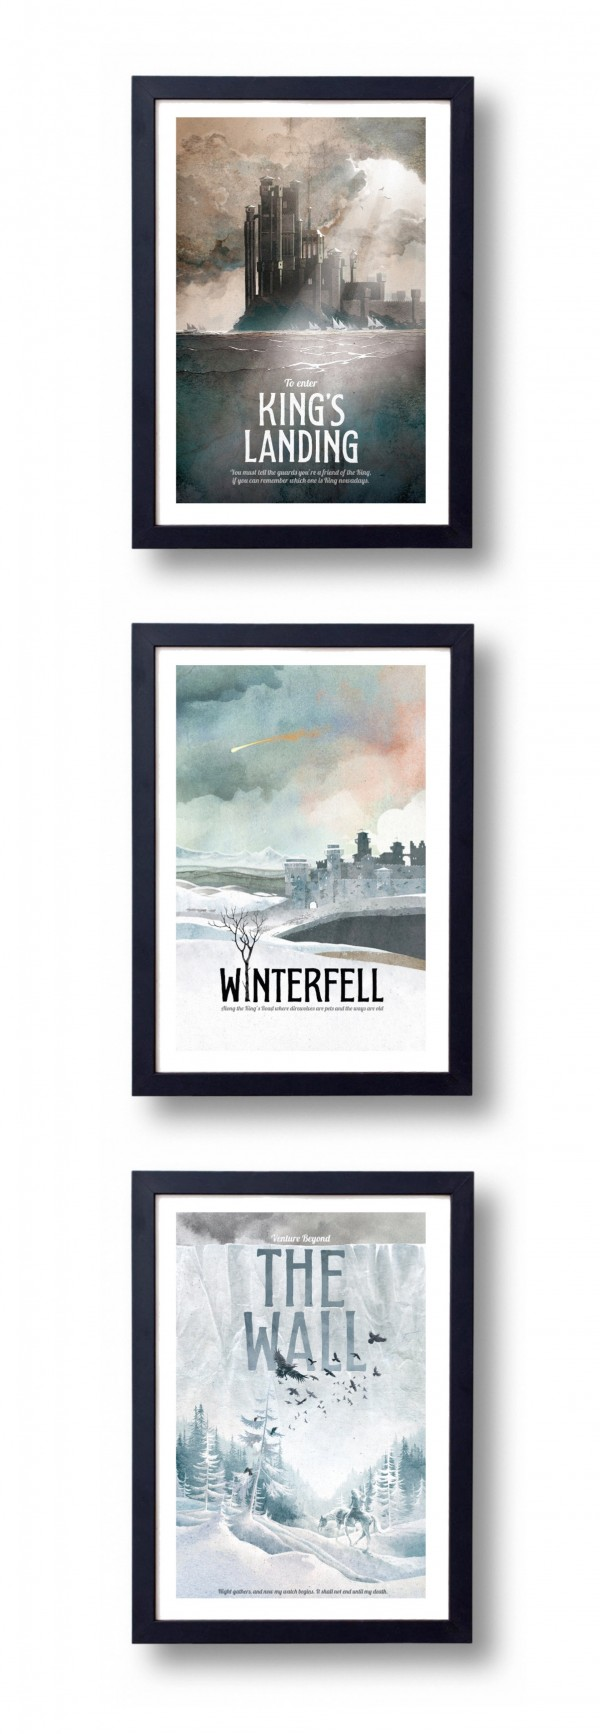 Game Of Thrones Gifts And Decor For Your Home Home Decorators Catalog Best Ideas of Home Decor and Design [homedecoratorscatalog.us]